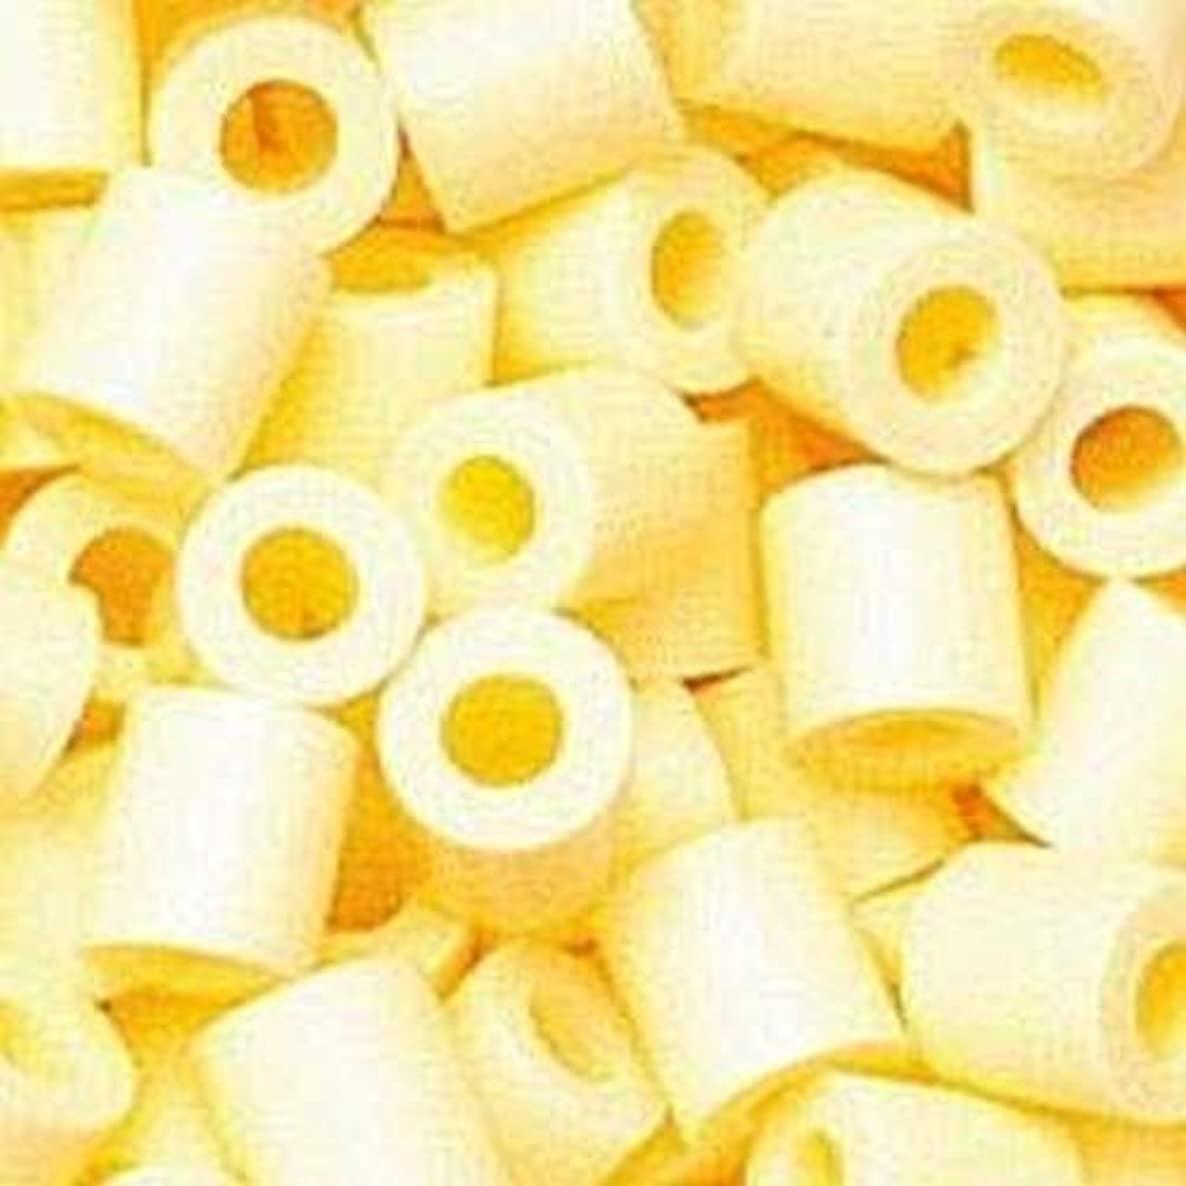 Efco Photo Pearls Beads, Plastic, Number 21 Light Yellow, 5 x 5 mm, 1100-Piece